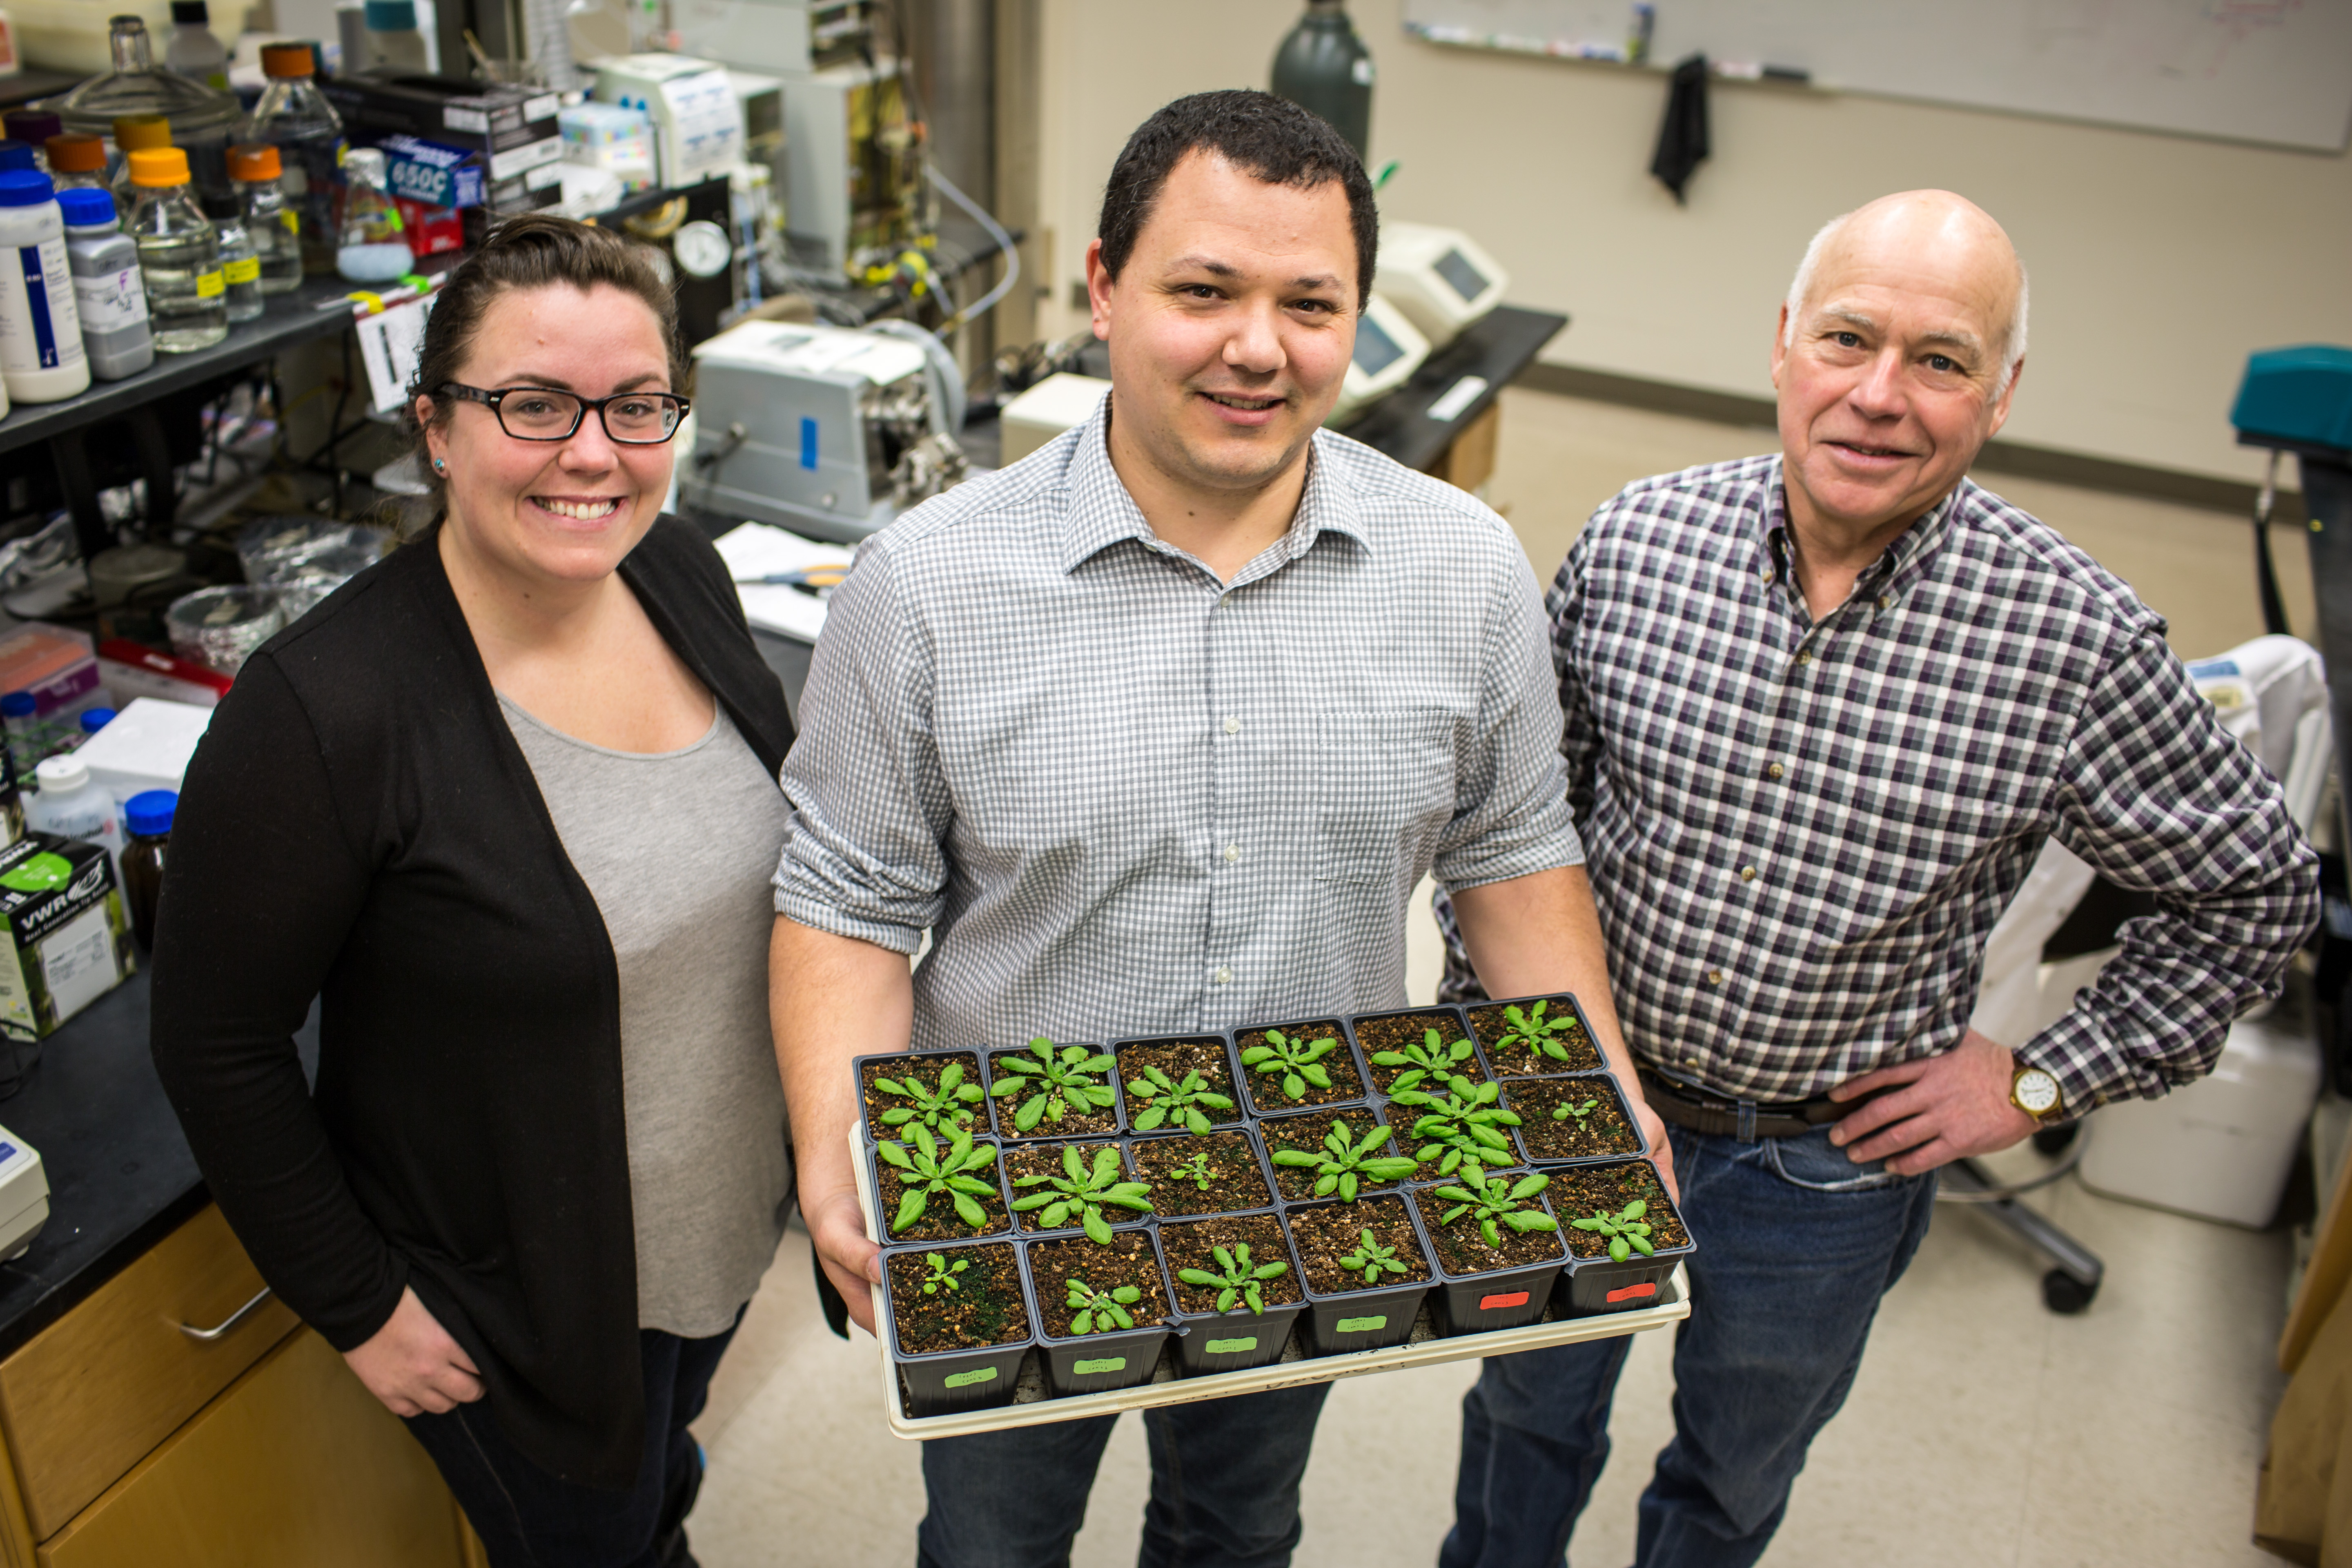 Three researchers pose in the lab with a tray of Arabidopsis.